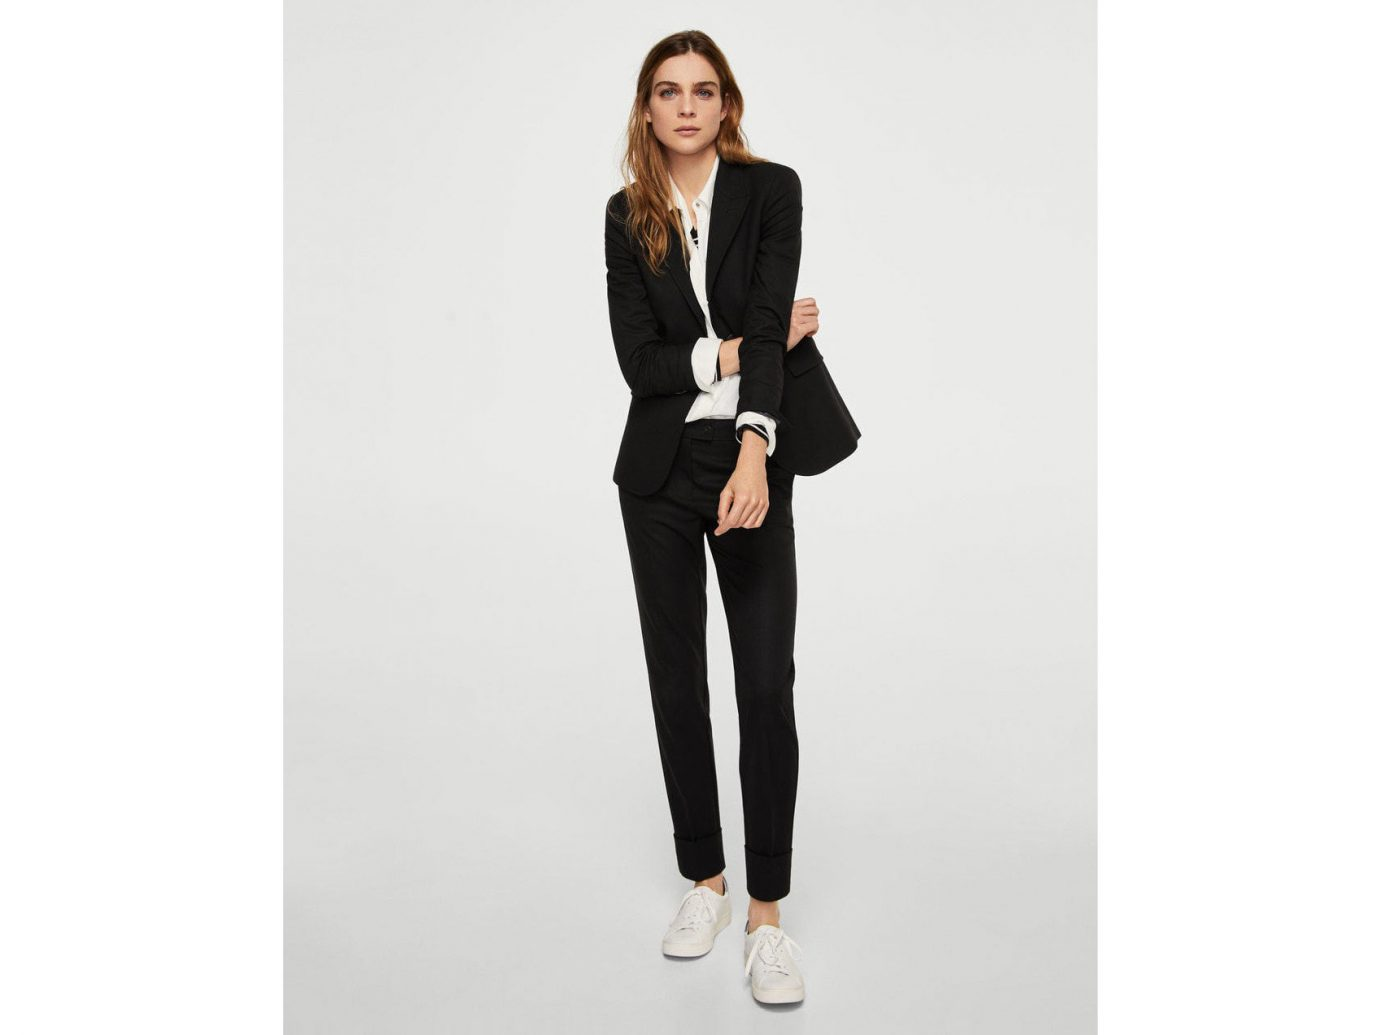 France Style + Design Travel Shop clothing standing woman suit posing fashion model person shoulder shoe formal wear outerwear jeans trousers joint blazer neck waist trouser dressed female